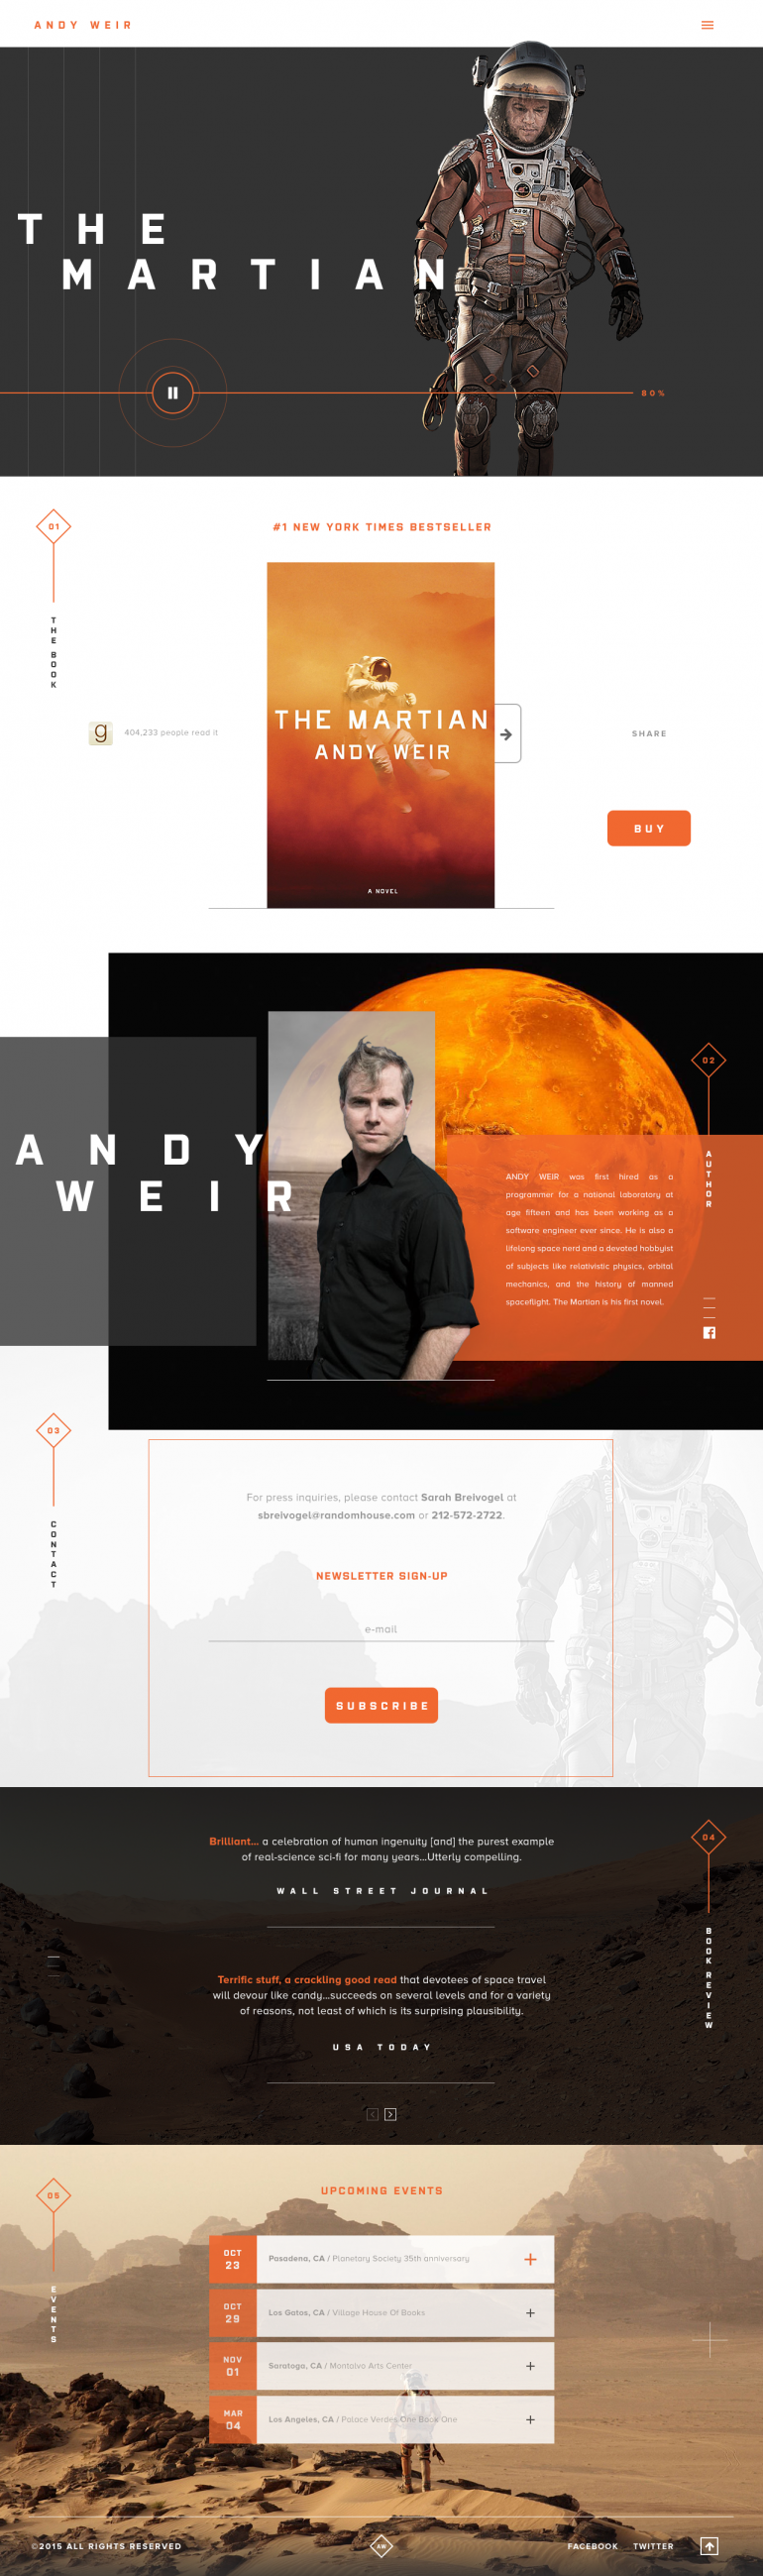 Book Author Website by Tulus Driyo